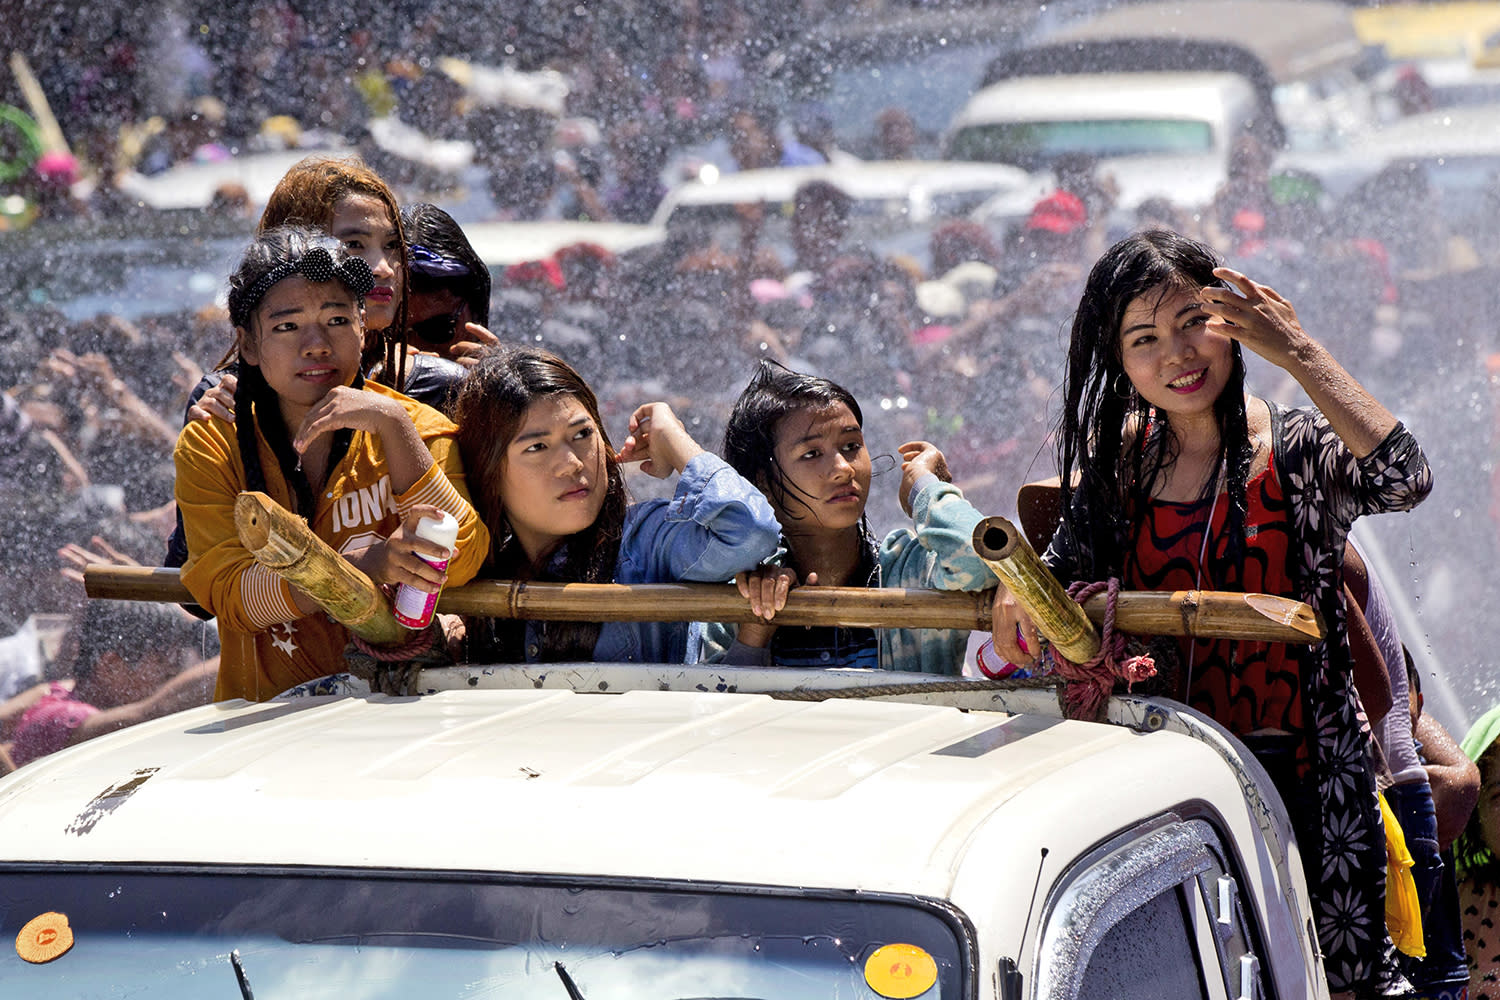 <p>Revelers are sprayed with water as they ride in the back of a truck during the second day of the traditional water festival, which is also known as the Burmese New Year Festival of Thingyan, April.14, 2017, in Yangon, Myanmar. (Photo: Thein Zaw/AP) </p>